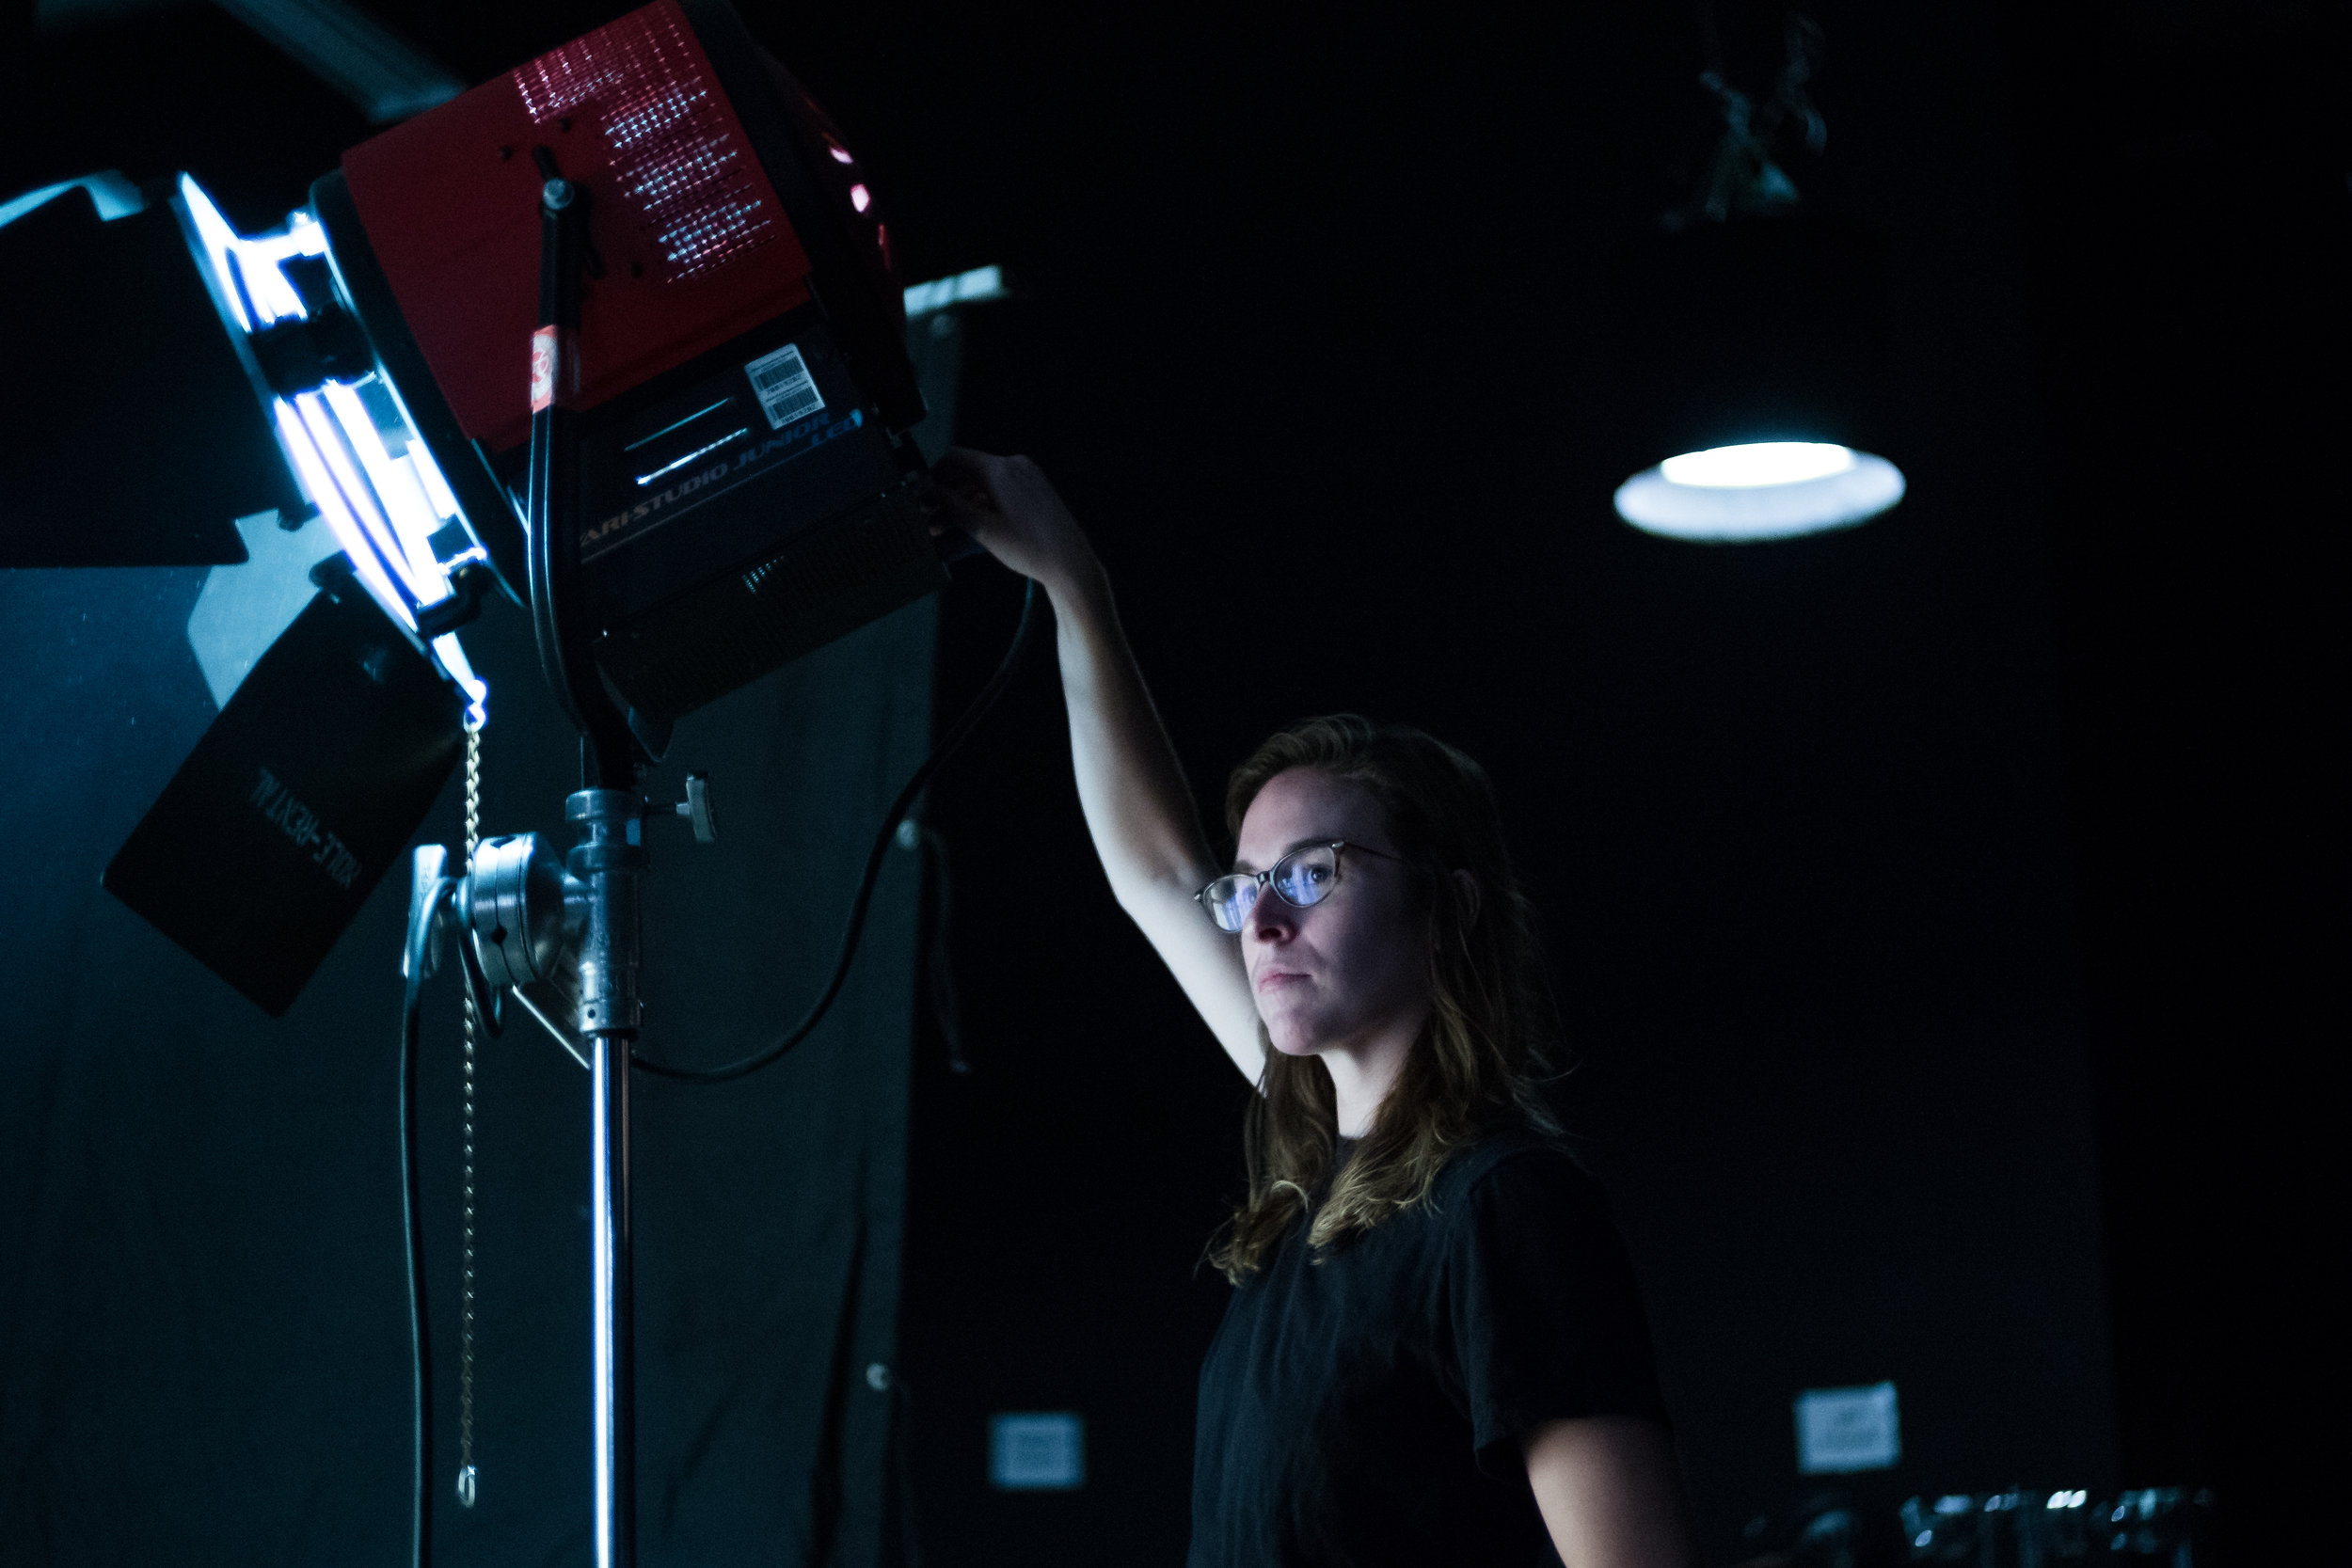 Cinematography fellow Erin Hughes adjusts the lights at our cinematography workshop.